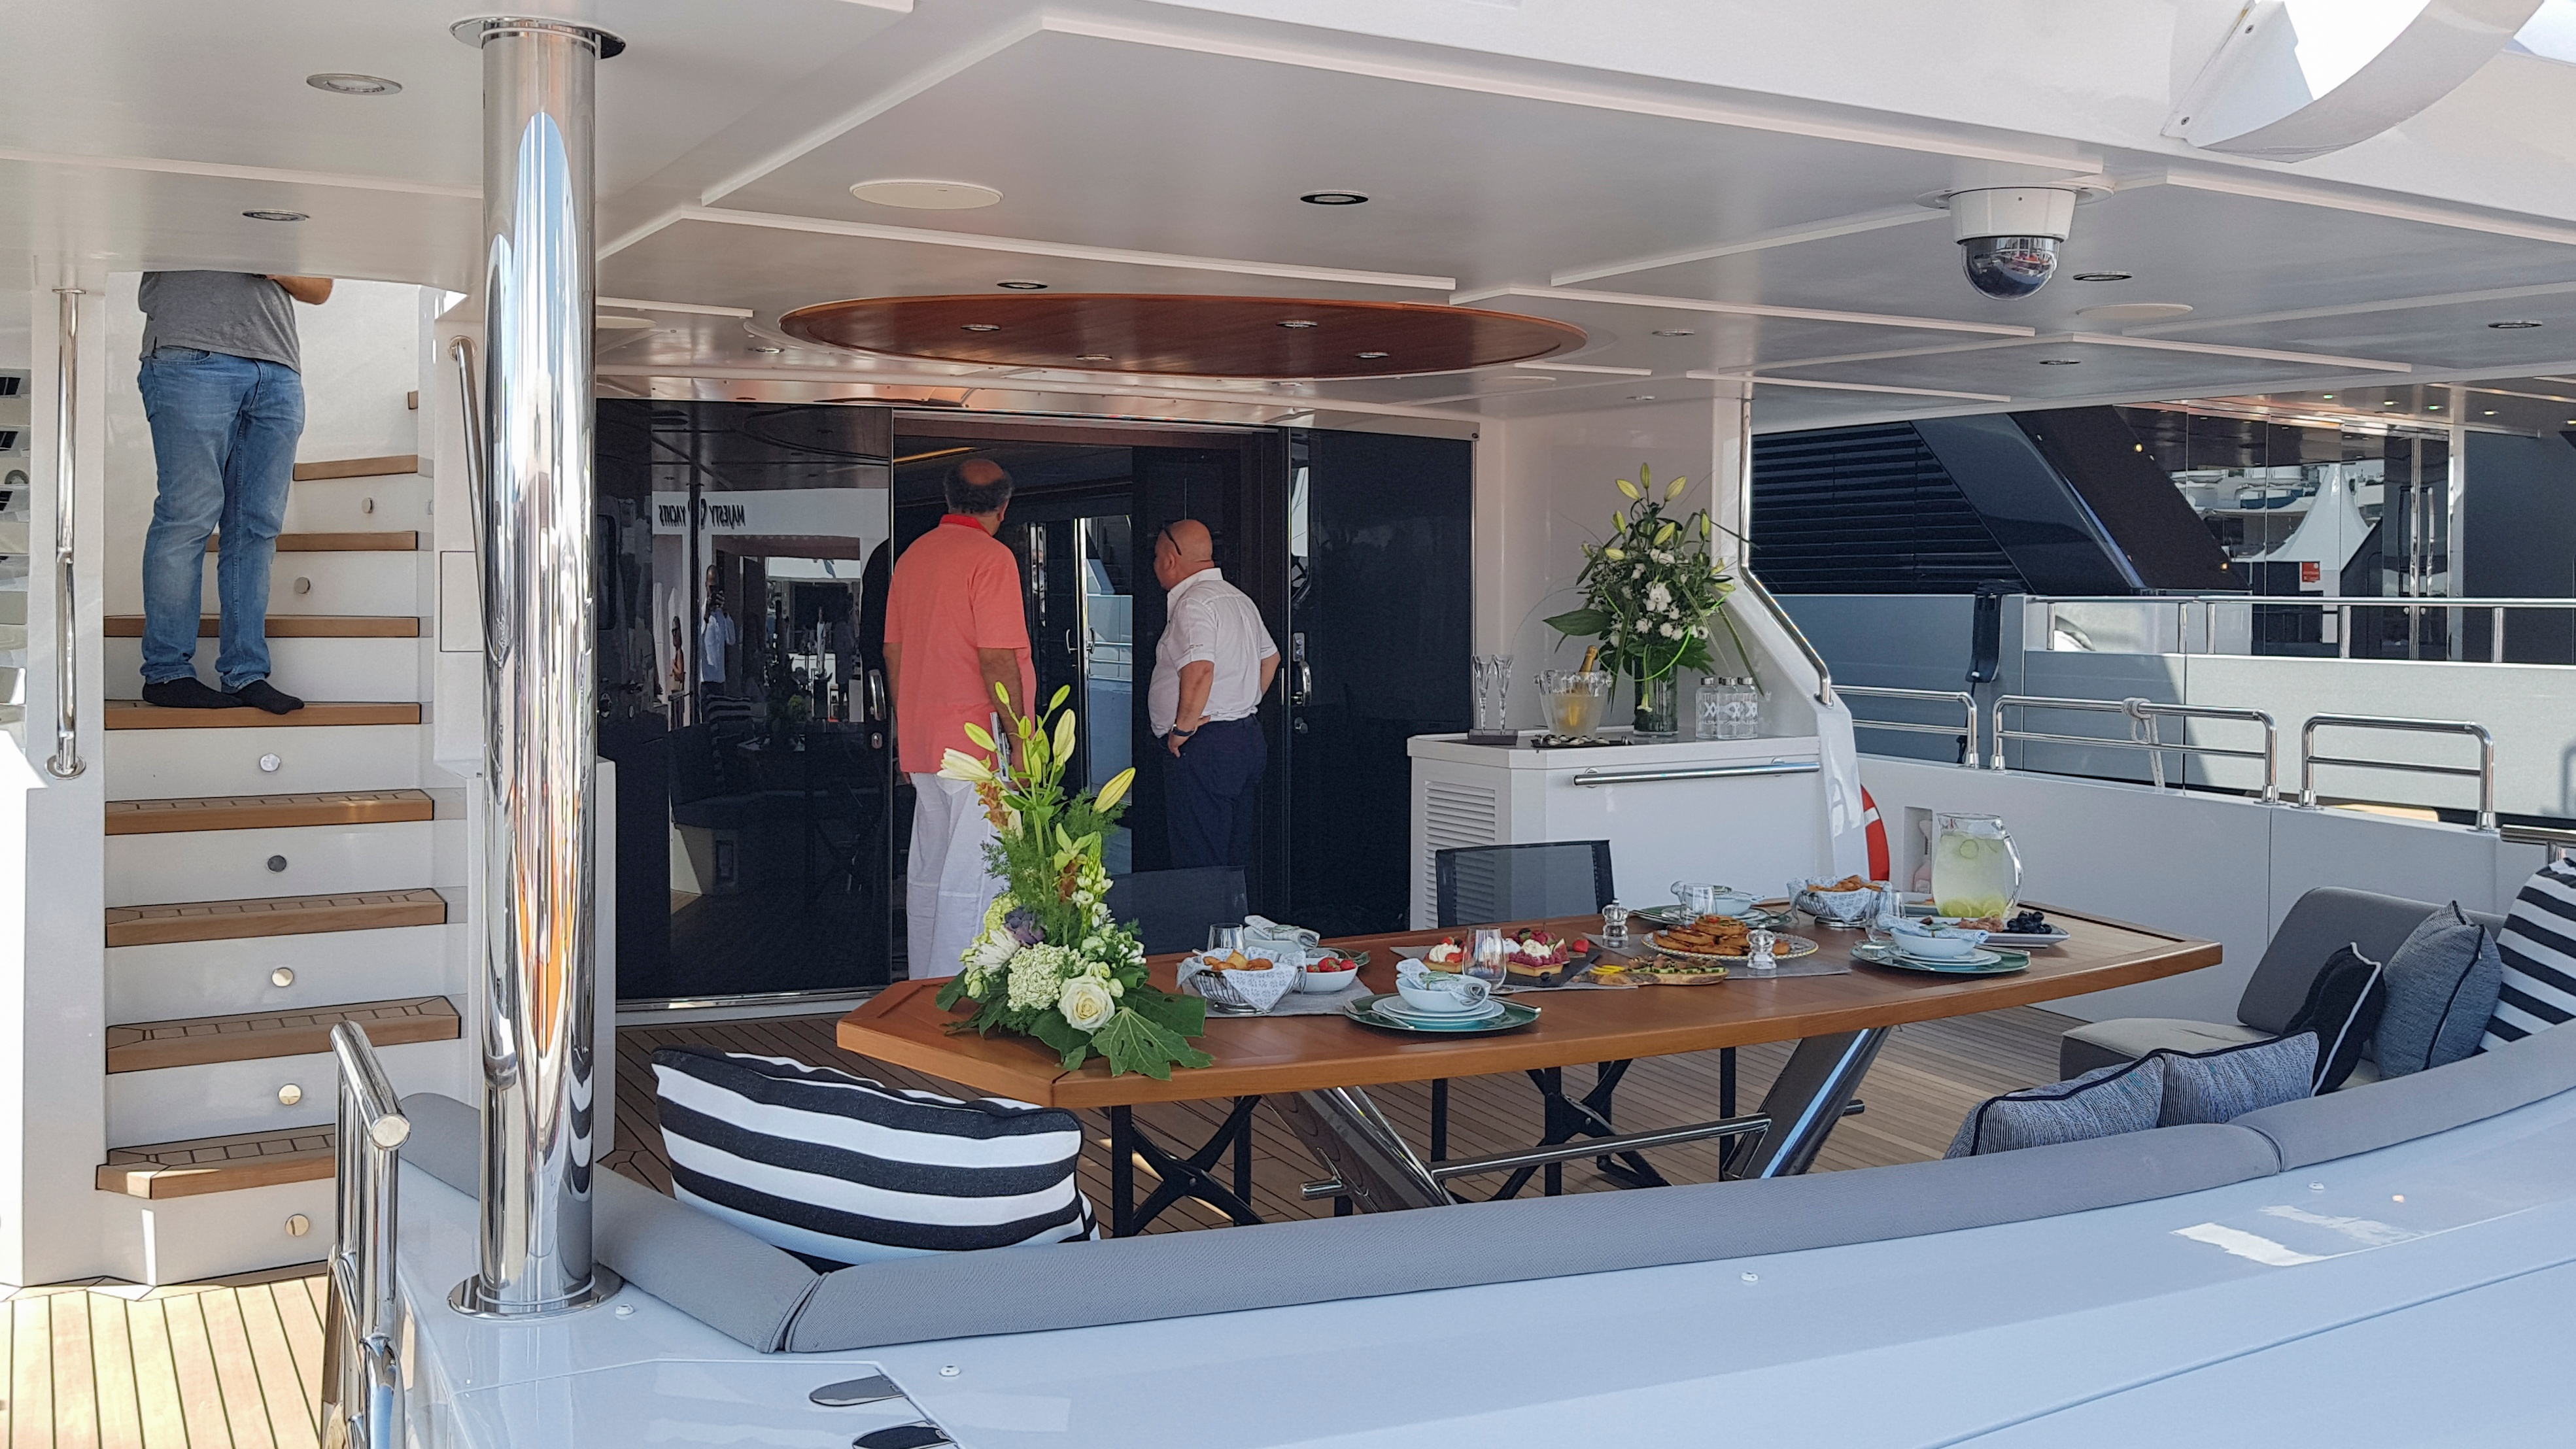 Gulf Craft in Cannes Yachting Festival 2018 Day 4 (8).jpg